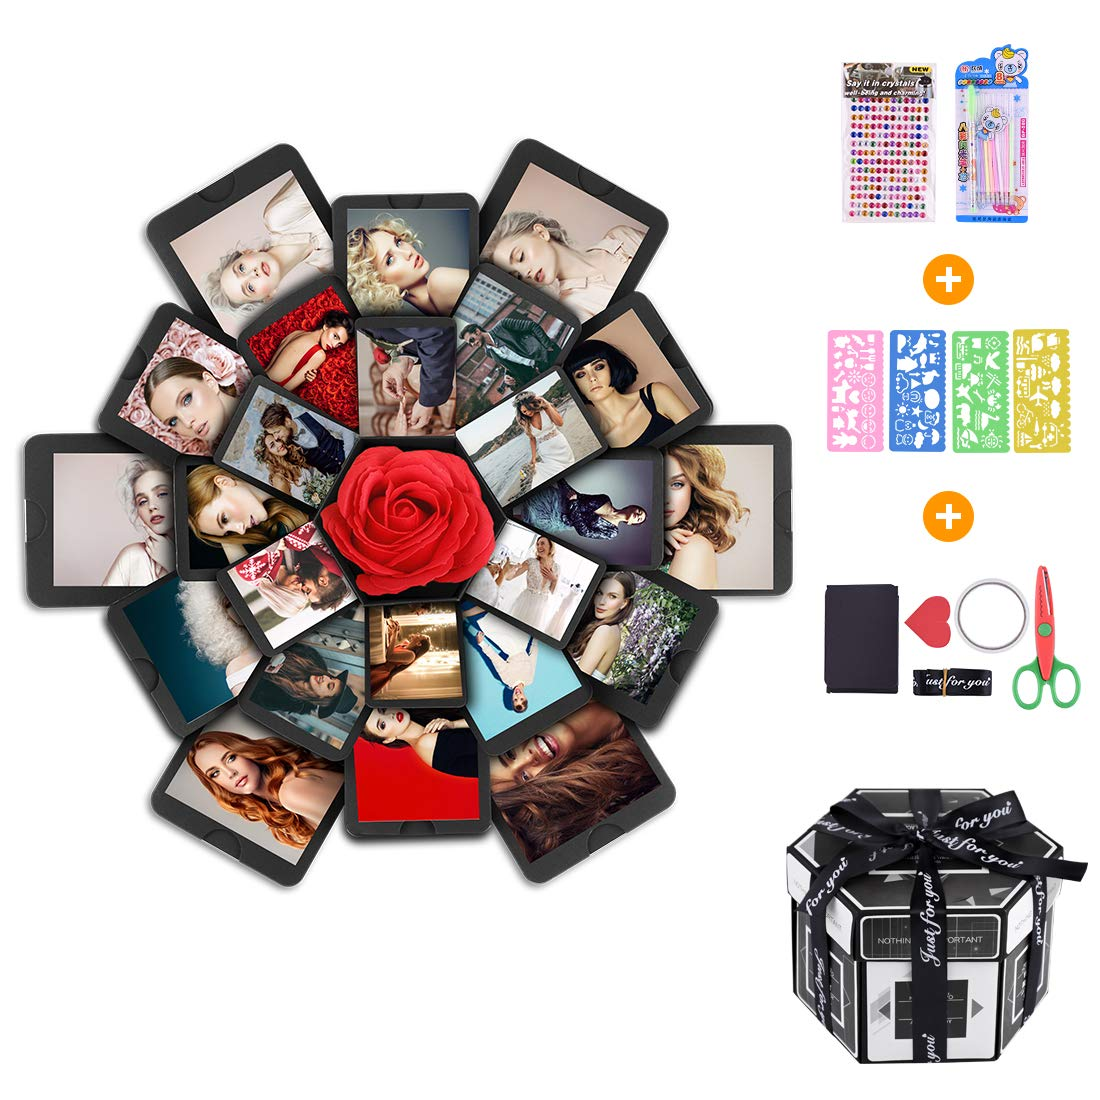 Creative Explosion Box -Explosion Box DIY Photo Album Scrapbook 6 Faces Explosion Gift Box for Wedding Proposal Engagement Birthday Anniversary Gifts, Black by aierliusa